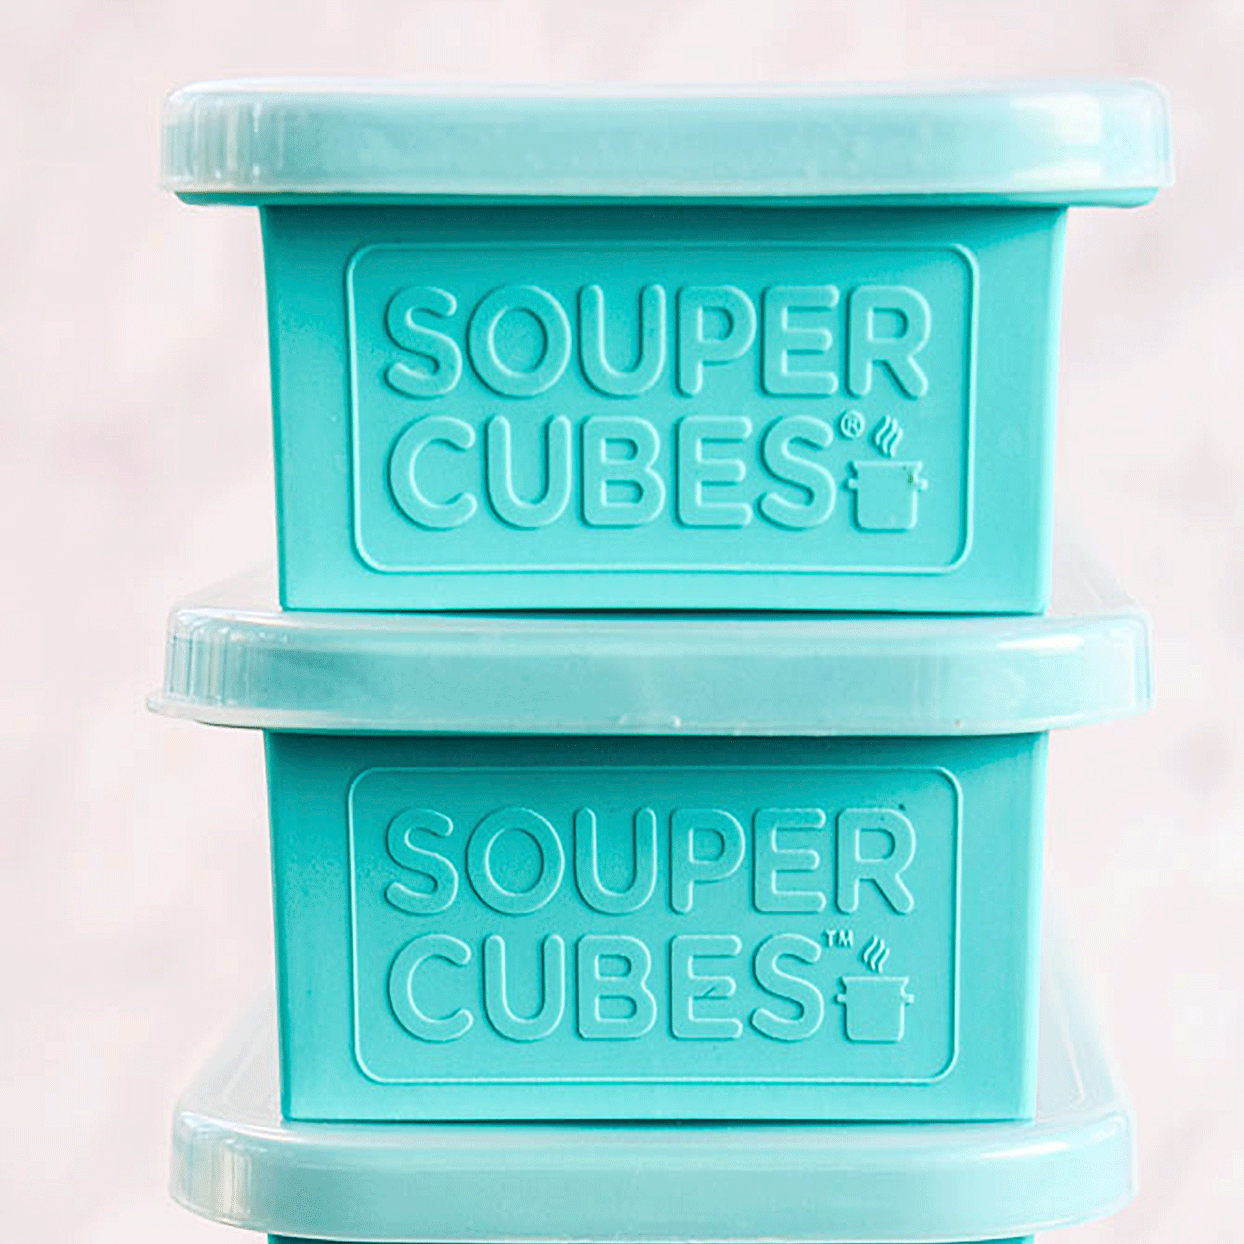 SOUPer Cubes containers